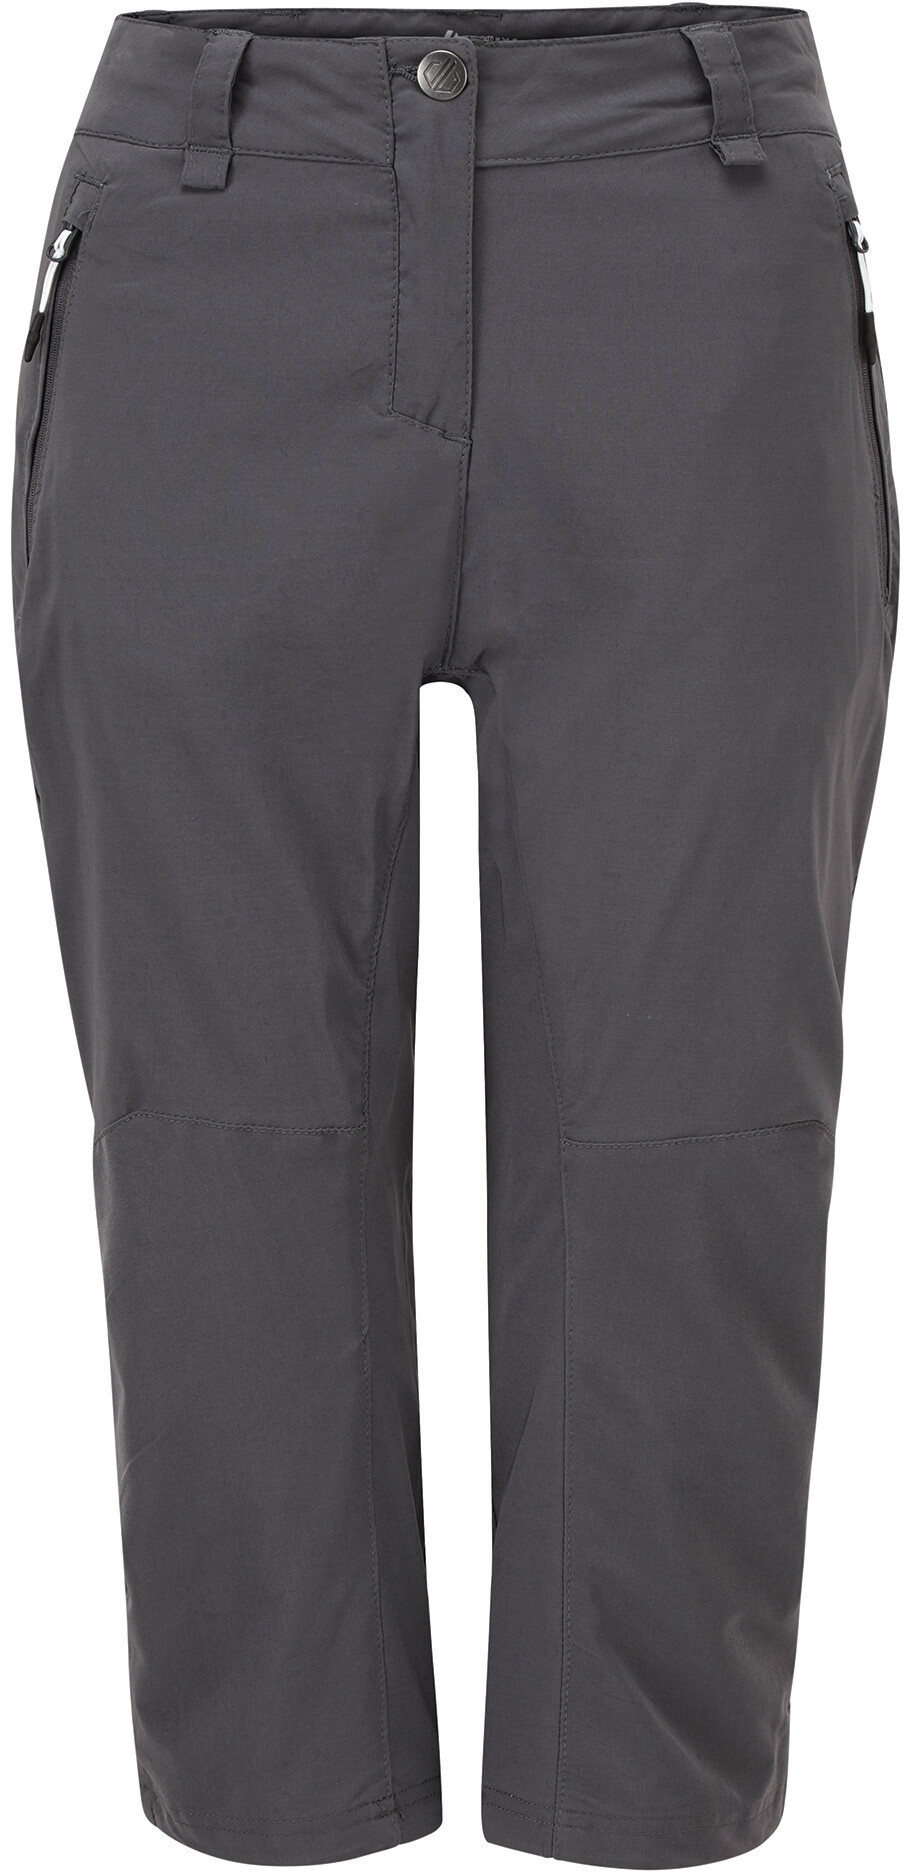 Dare 2b Melodic II 34 Shorts Dames, ebony grey